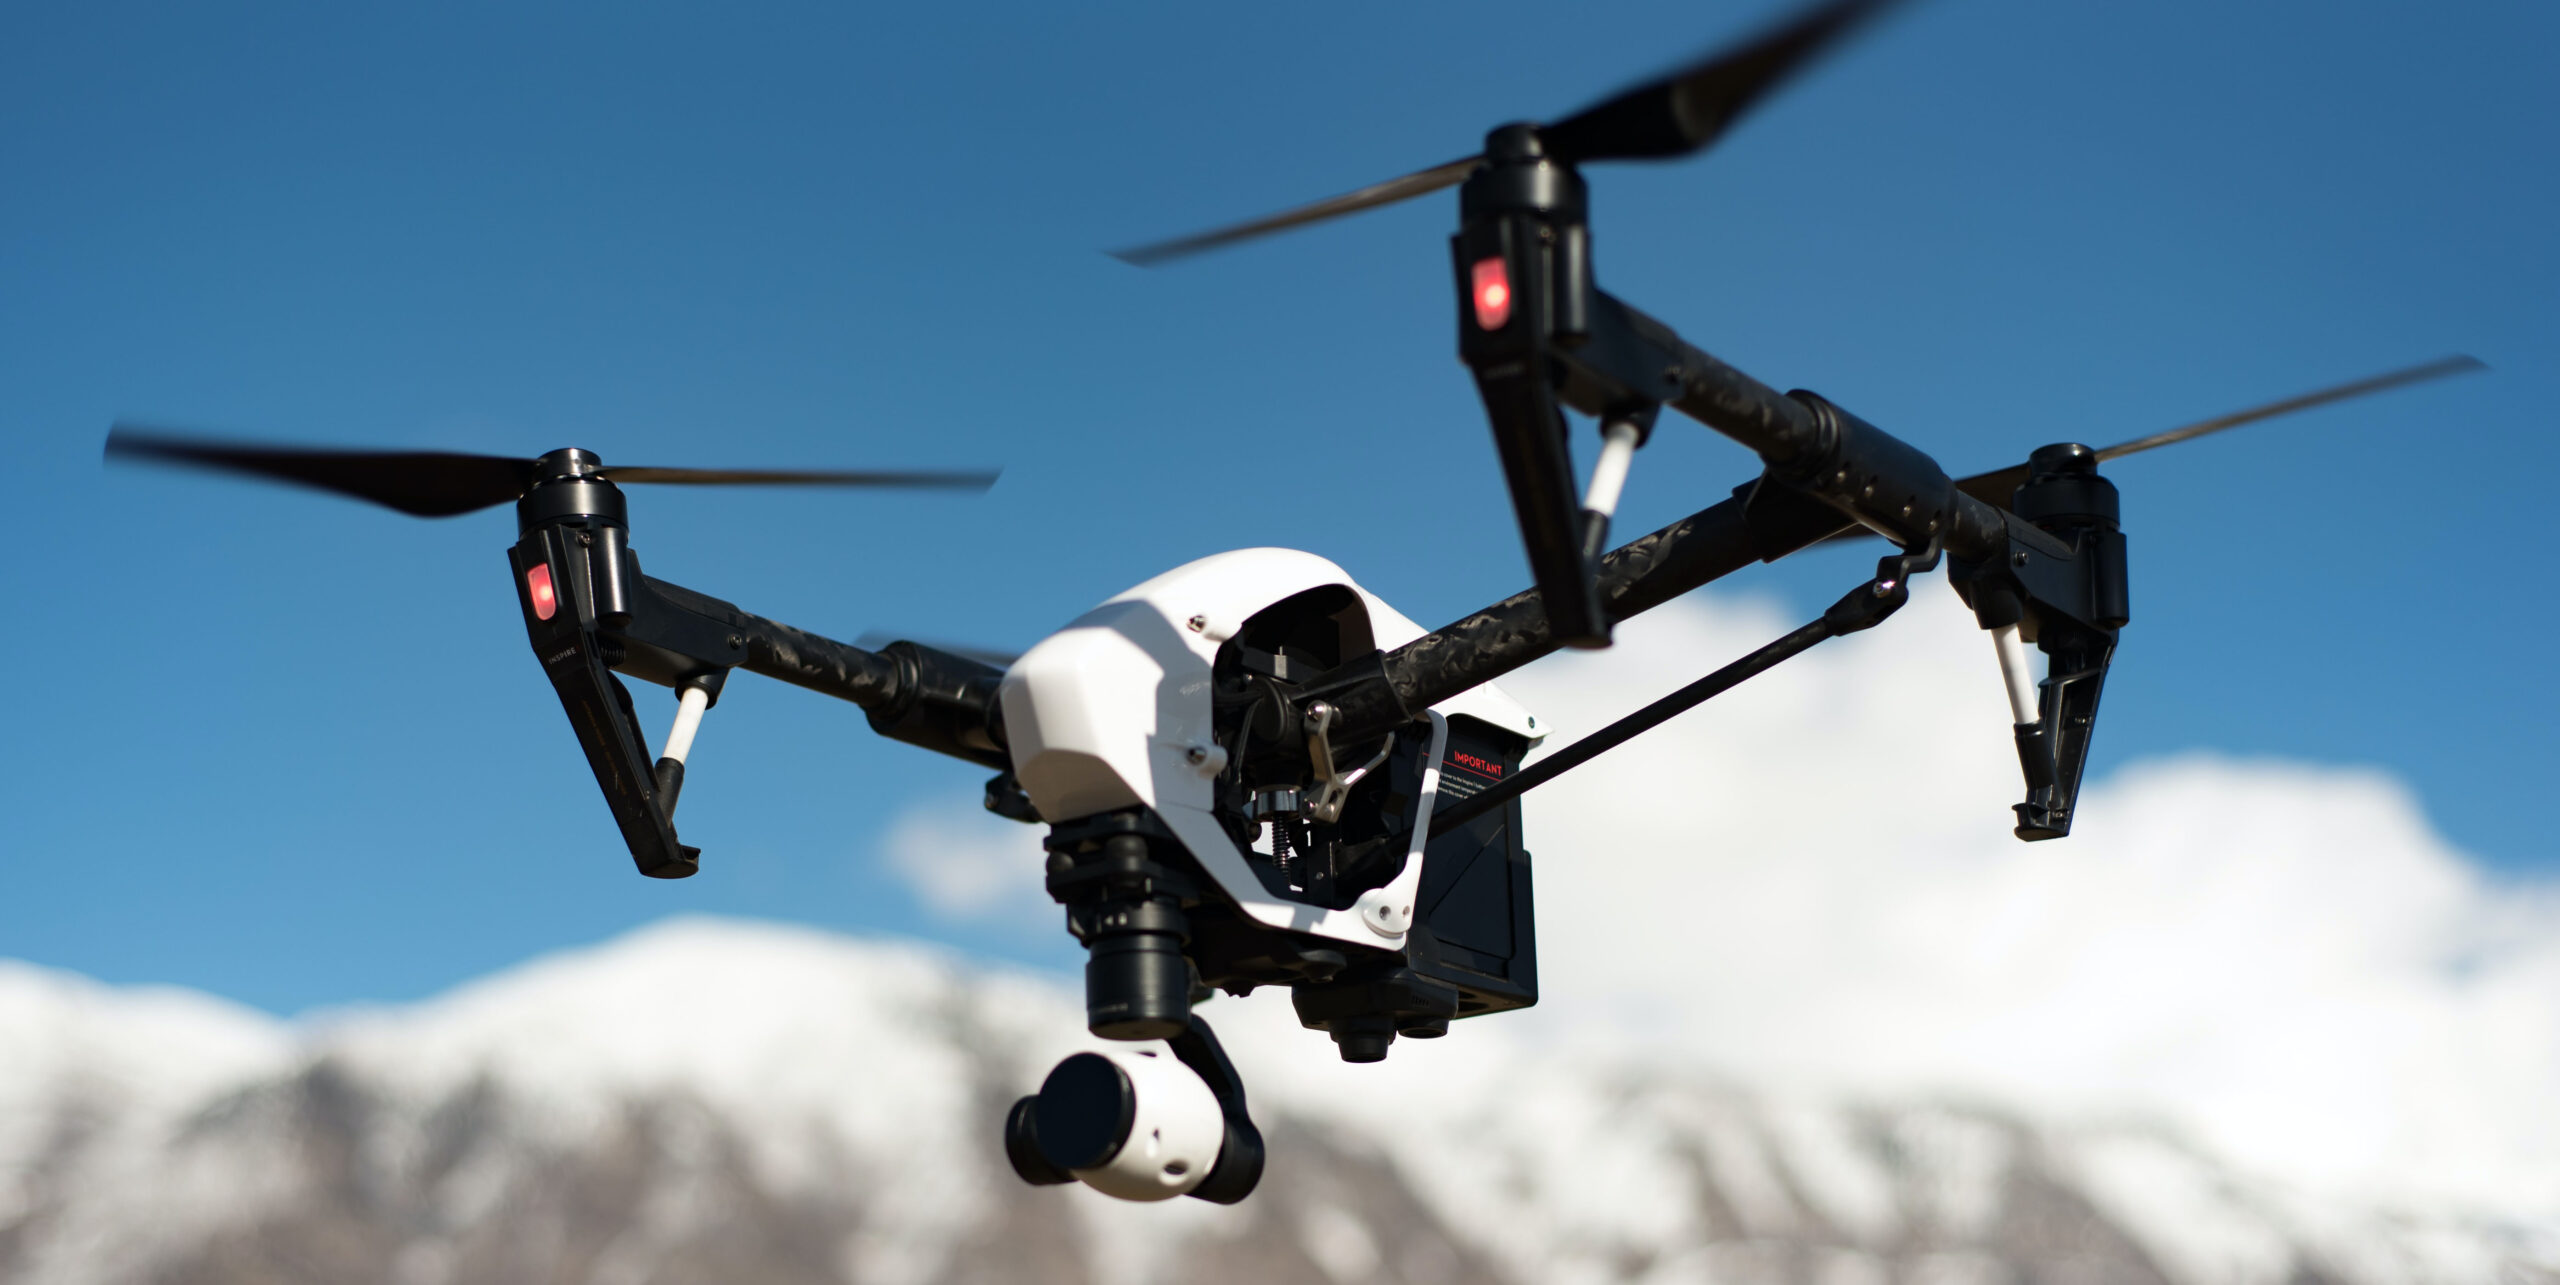 Professor Kevin Curran, Ulster University in an interview with Nationwide Courier Services on the future of drones in delivery.